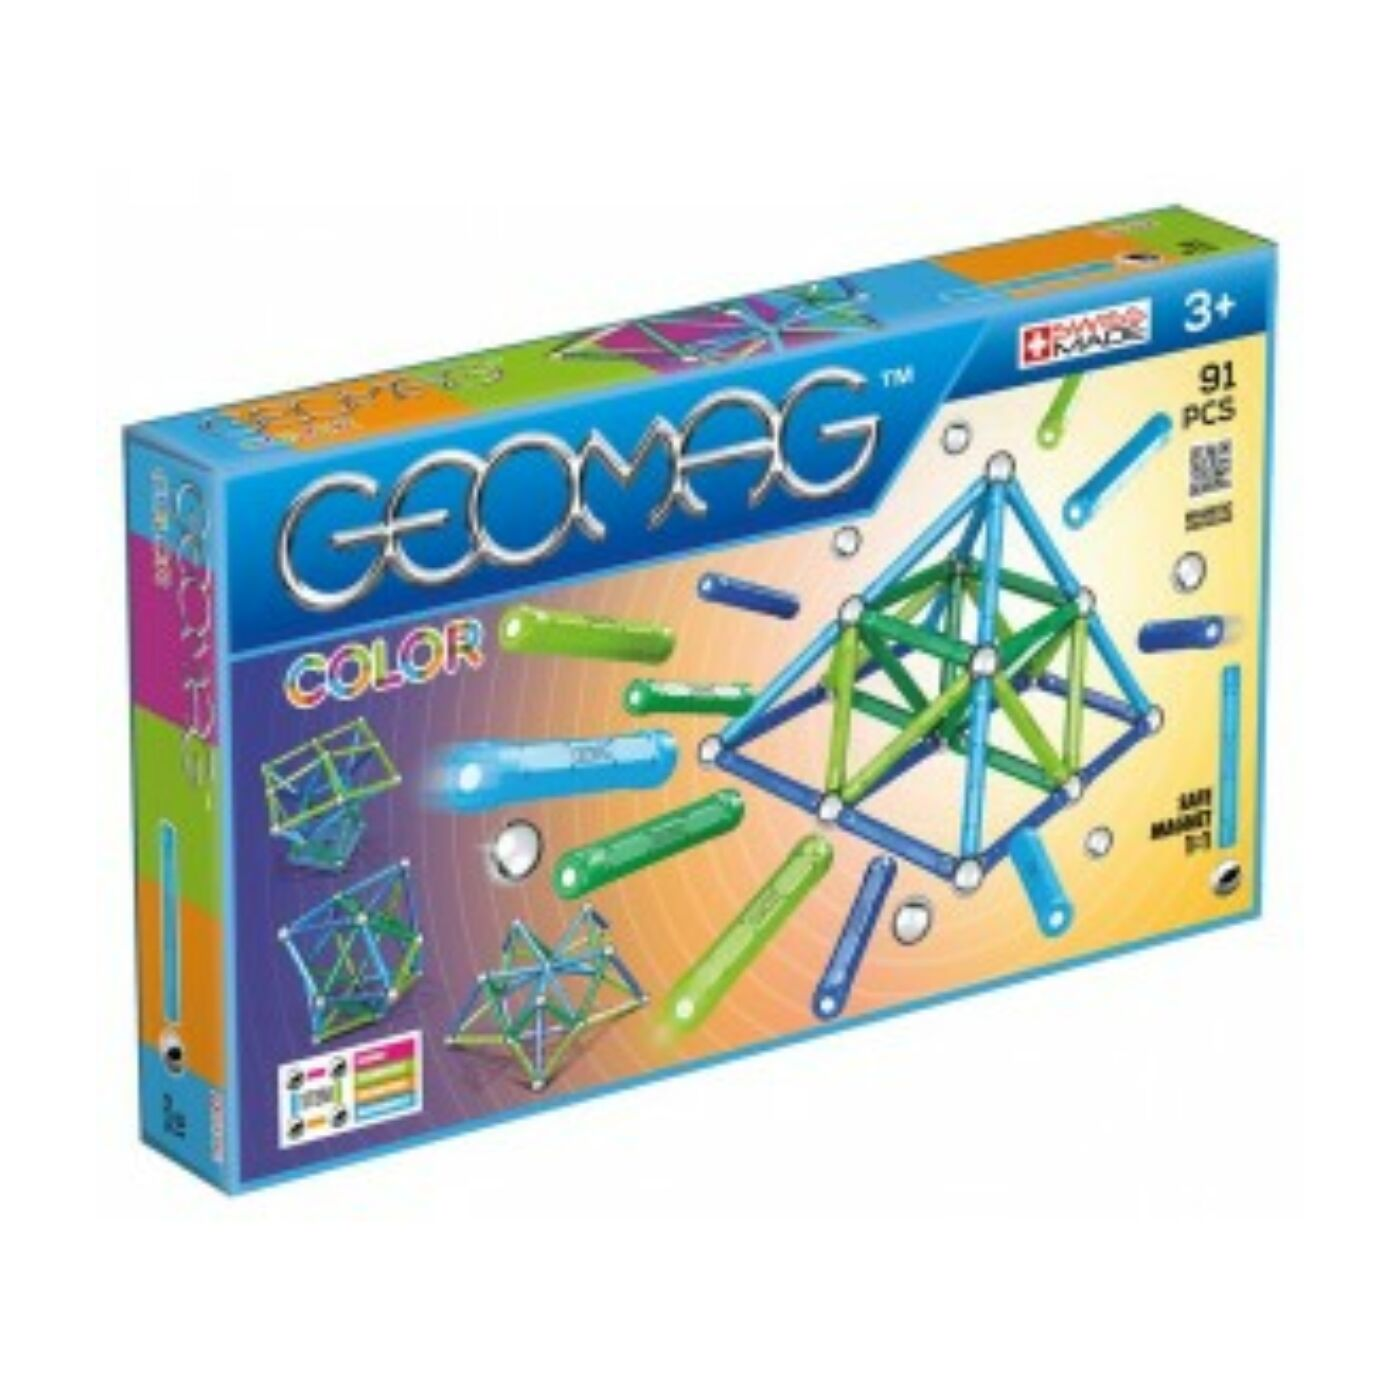 Geomag color 91 db-os